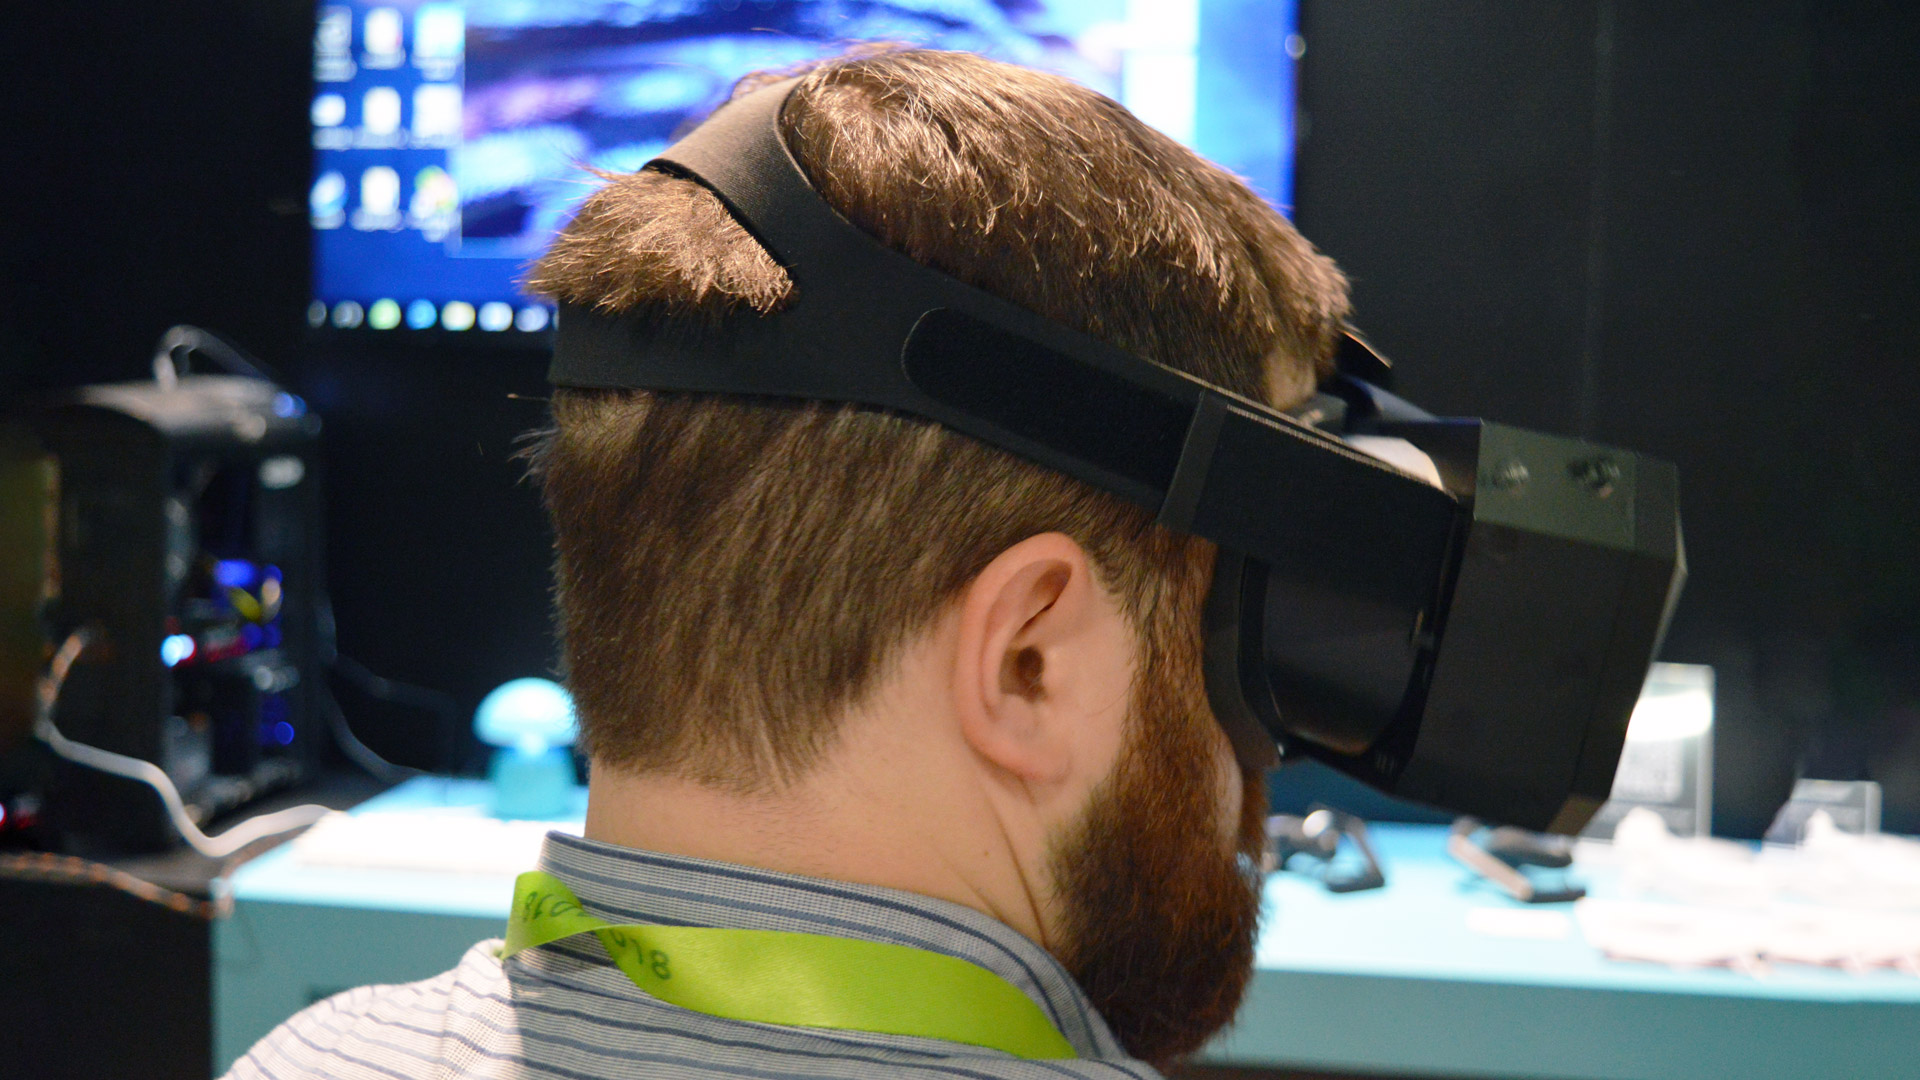 CES 2019: Pimax's 8K & 5K Plus See Big Improvements Ahead of